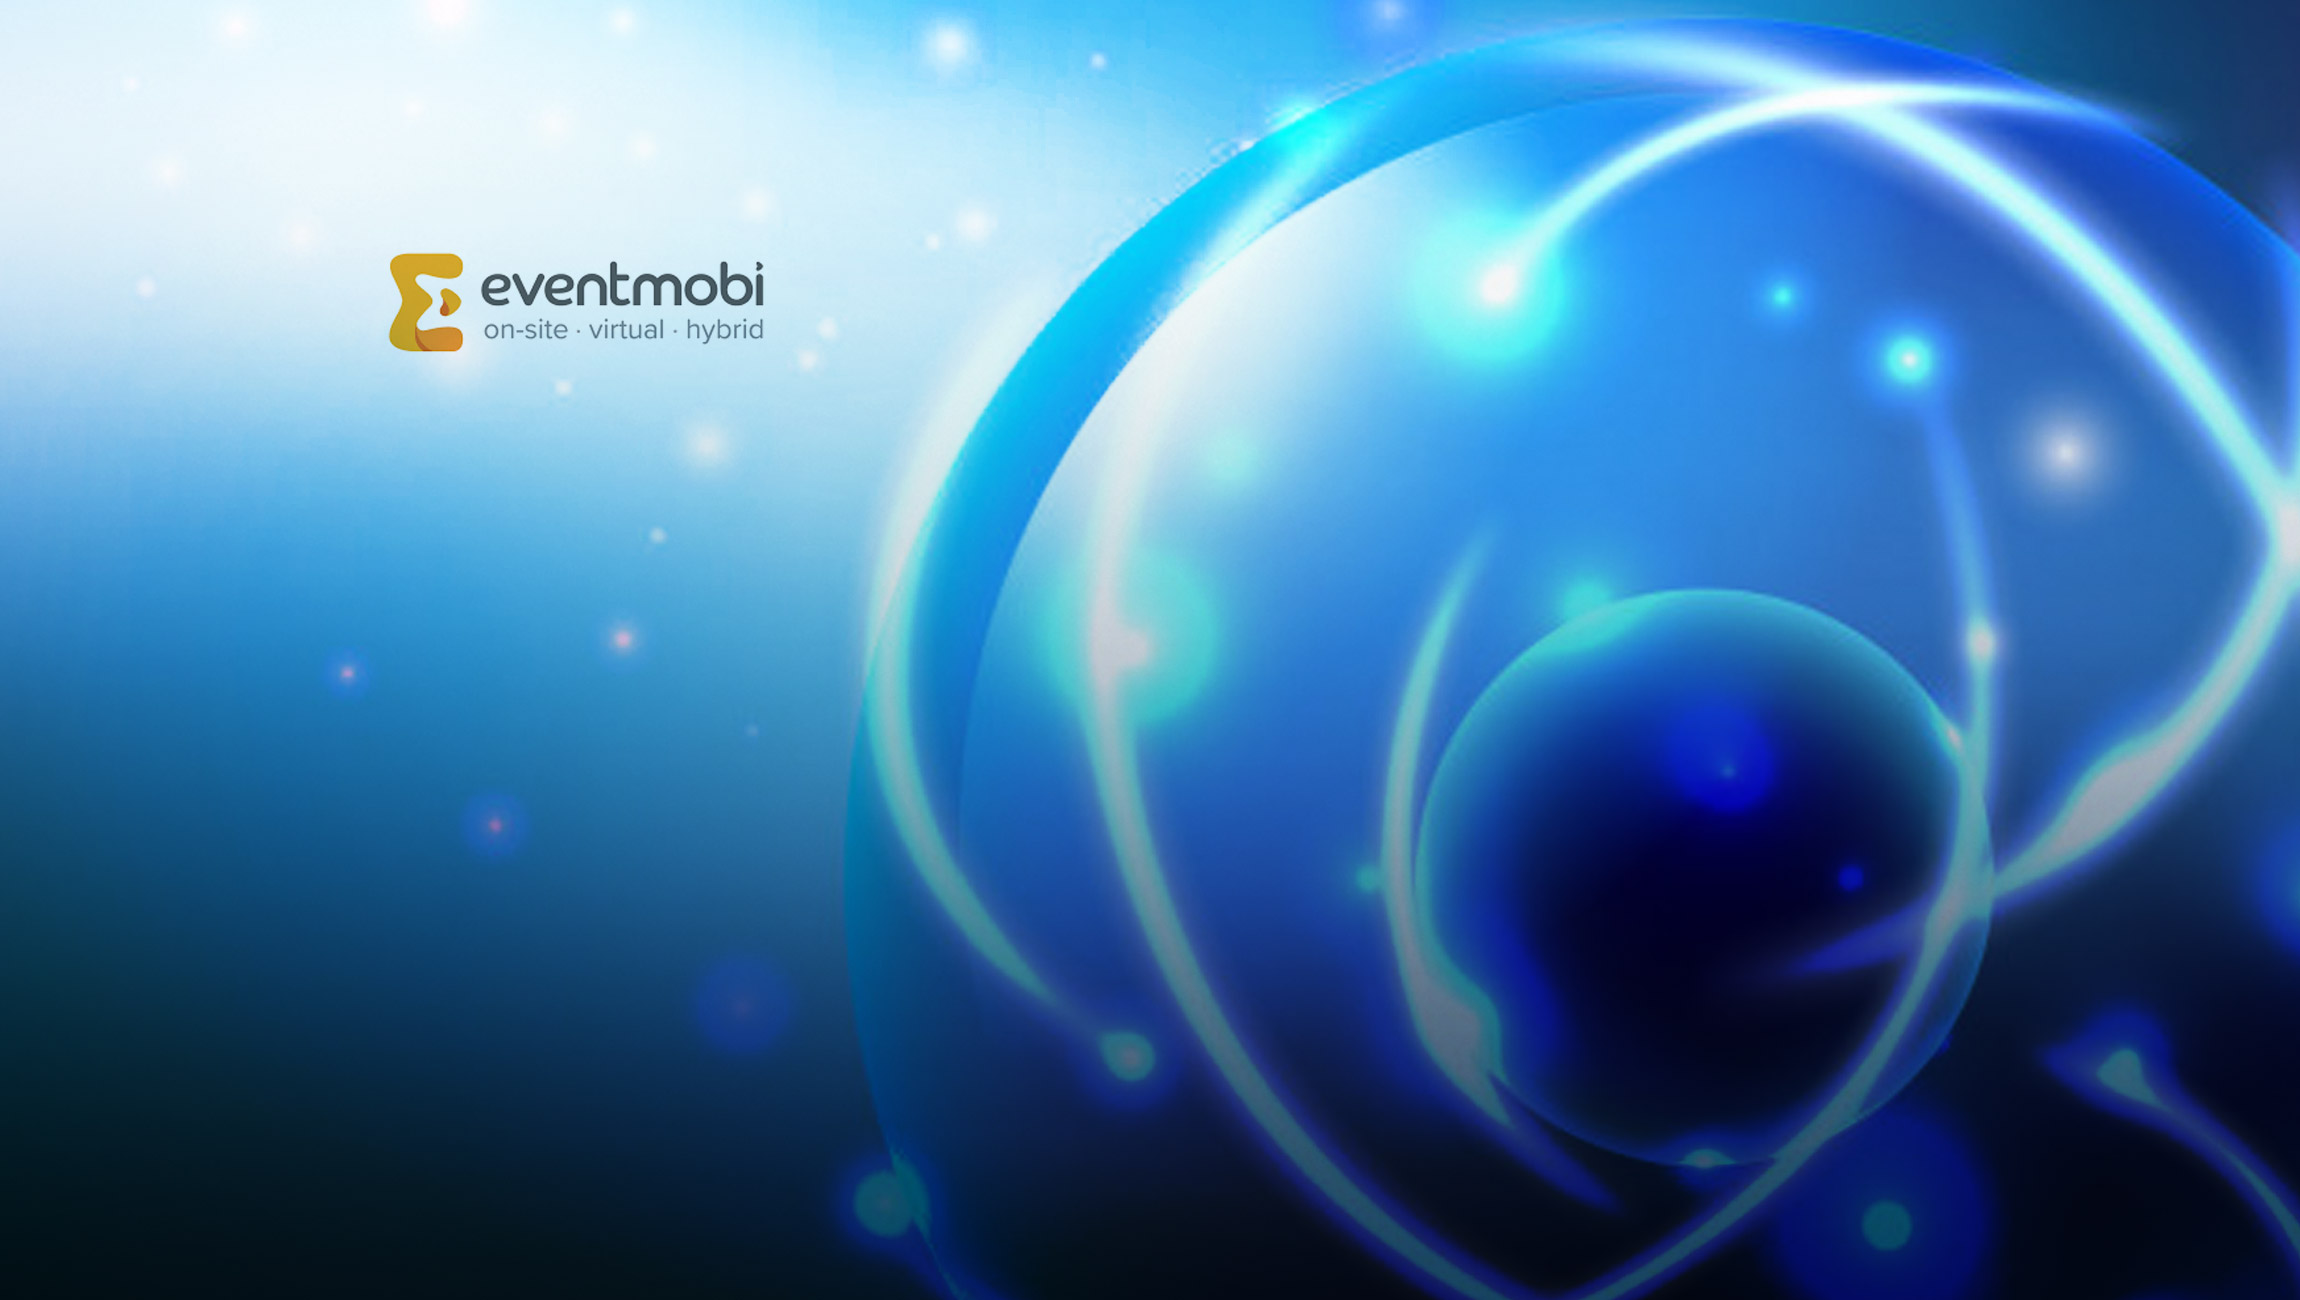 EventMobi-Joins-Zoom-App-Marketplace_-Enabling-Interactive-Sessions-for-Virtual-Event-Experiences